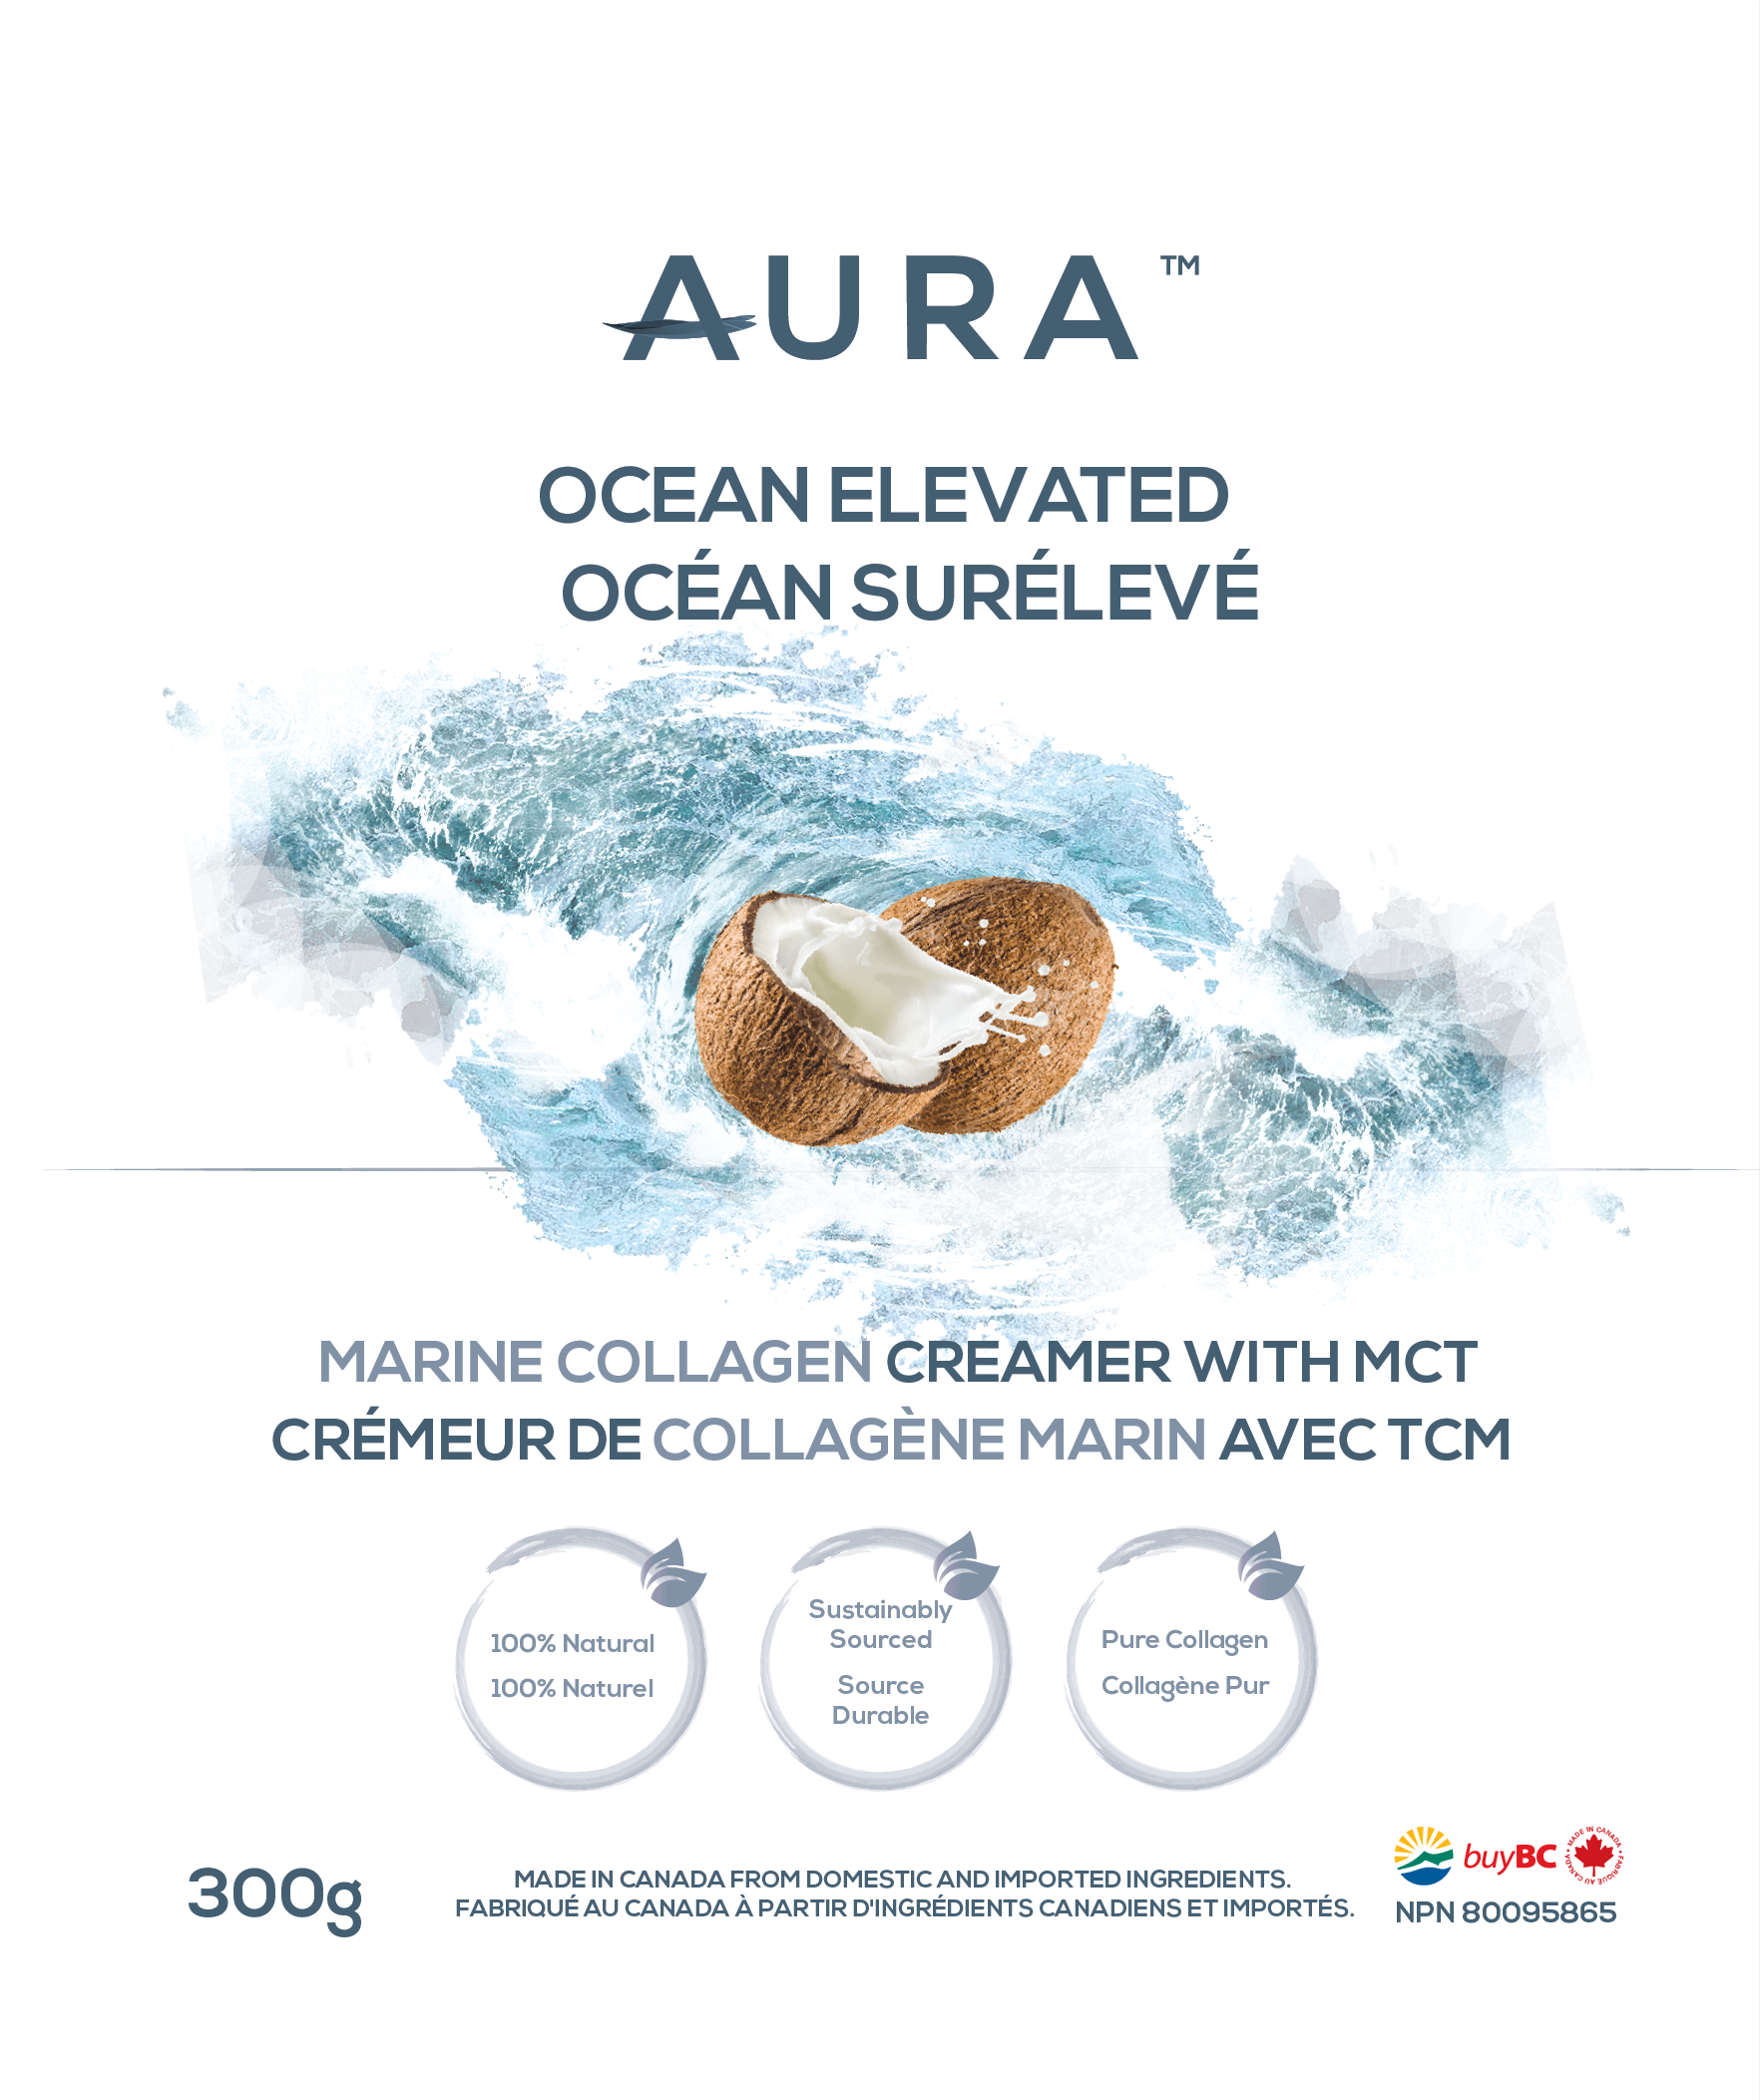 AURA™ Ocean Elevated 300g / 35 Servings